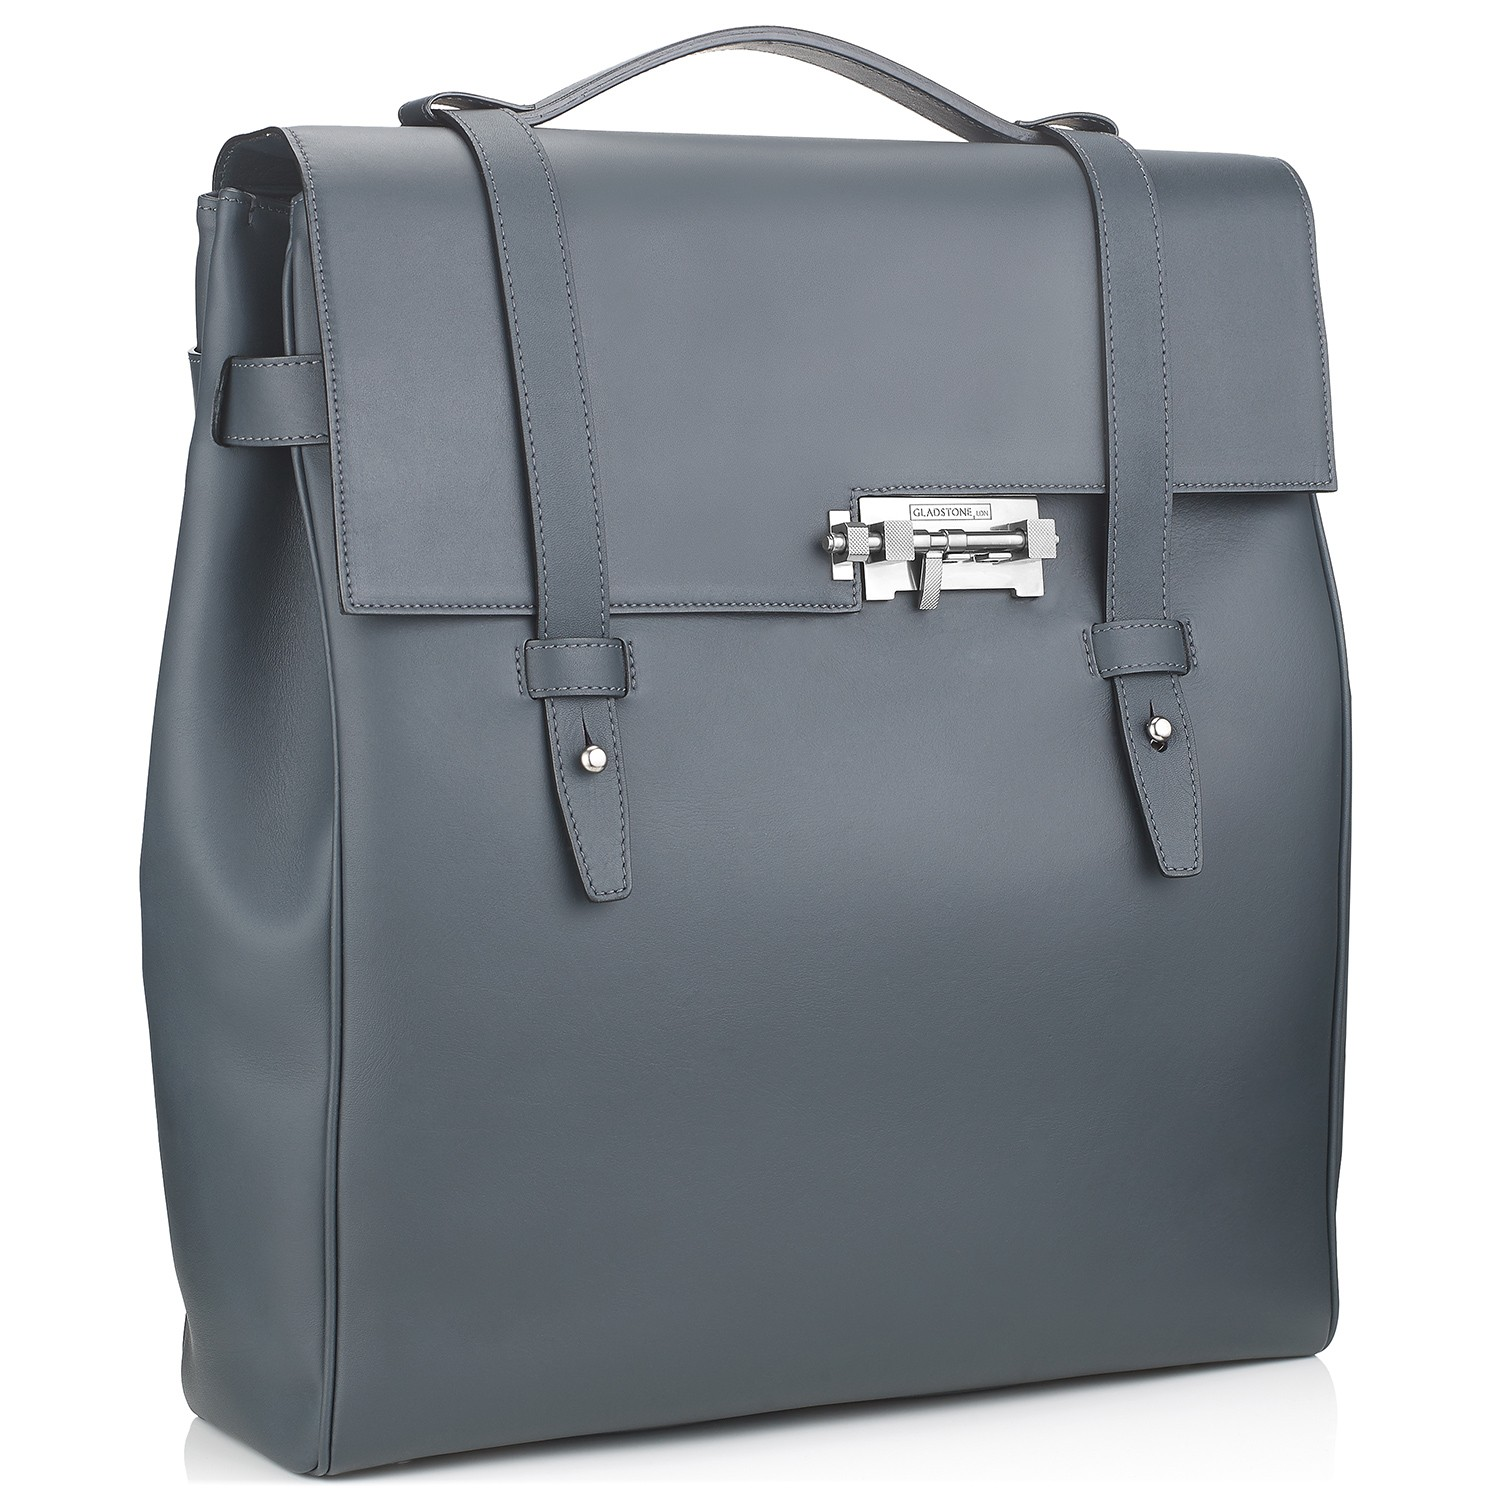 G21 Tote Bag Phantom Grey Side